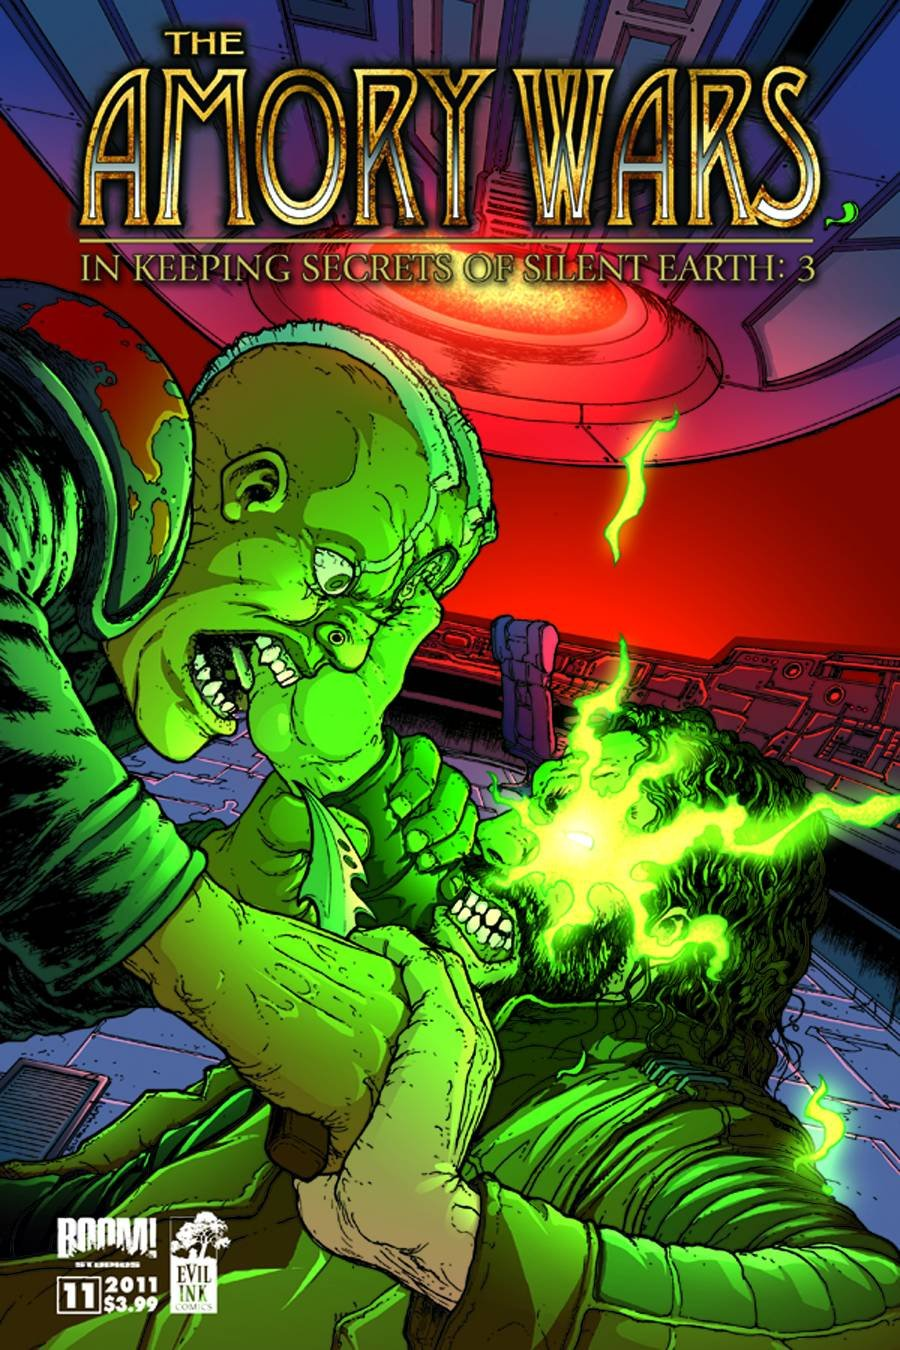 AMORY WARS KEEPING SECRETS OF SILENT EARTH 3 #11 (OF 12) near mint comic